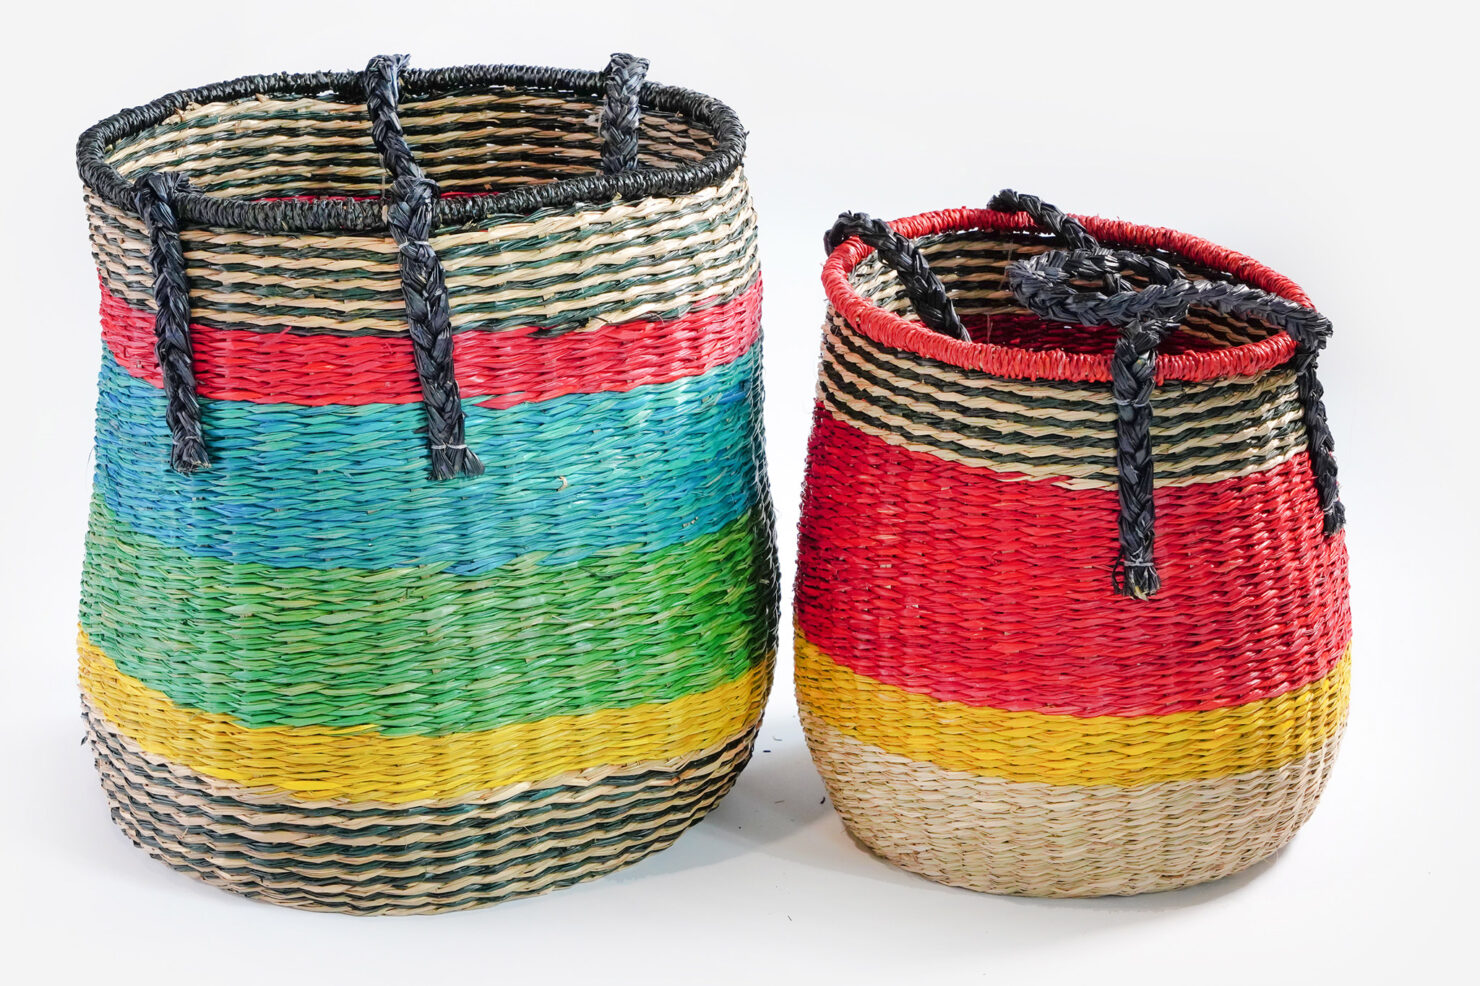 SET 2 MULTICOLOR WICKER BASKETS - BAZAR DE LUXE